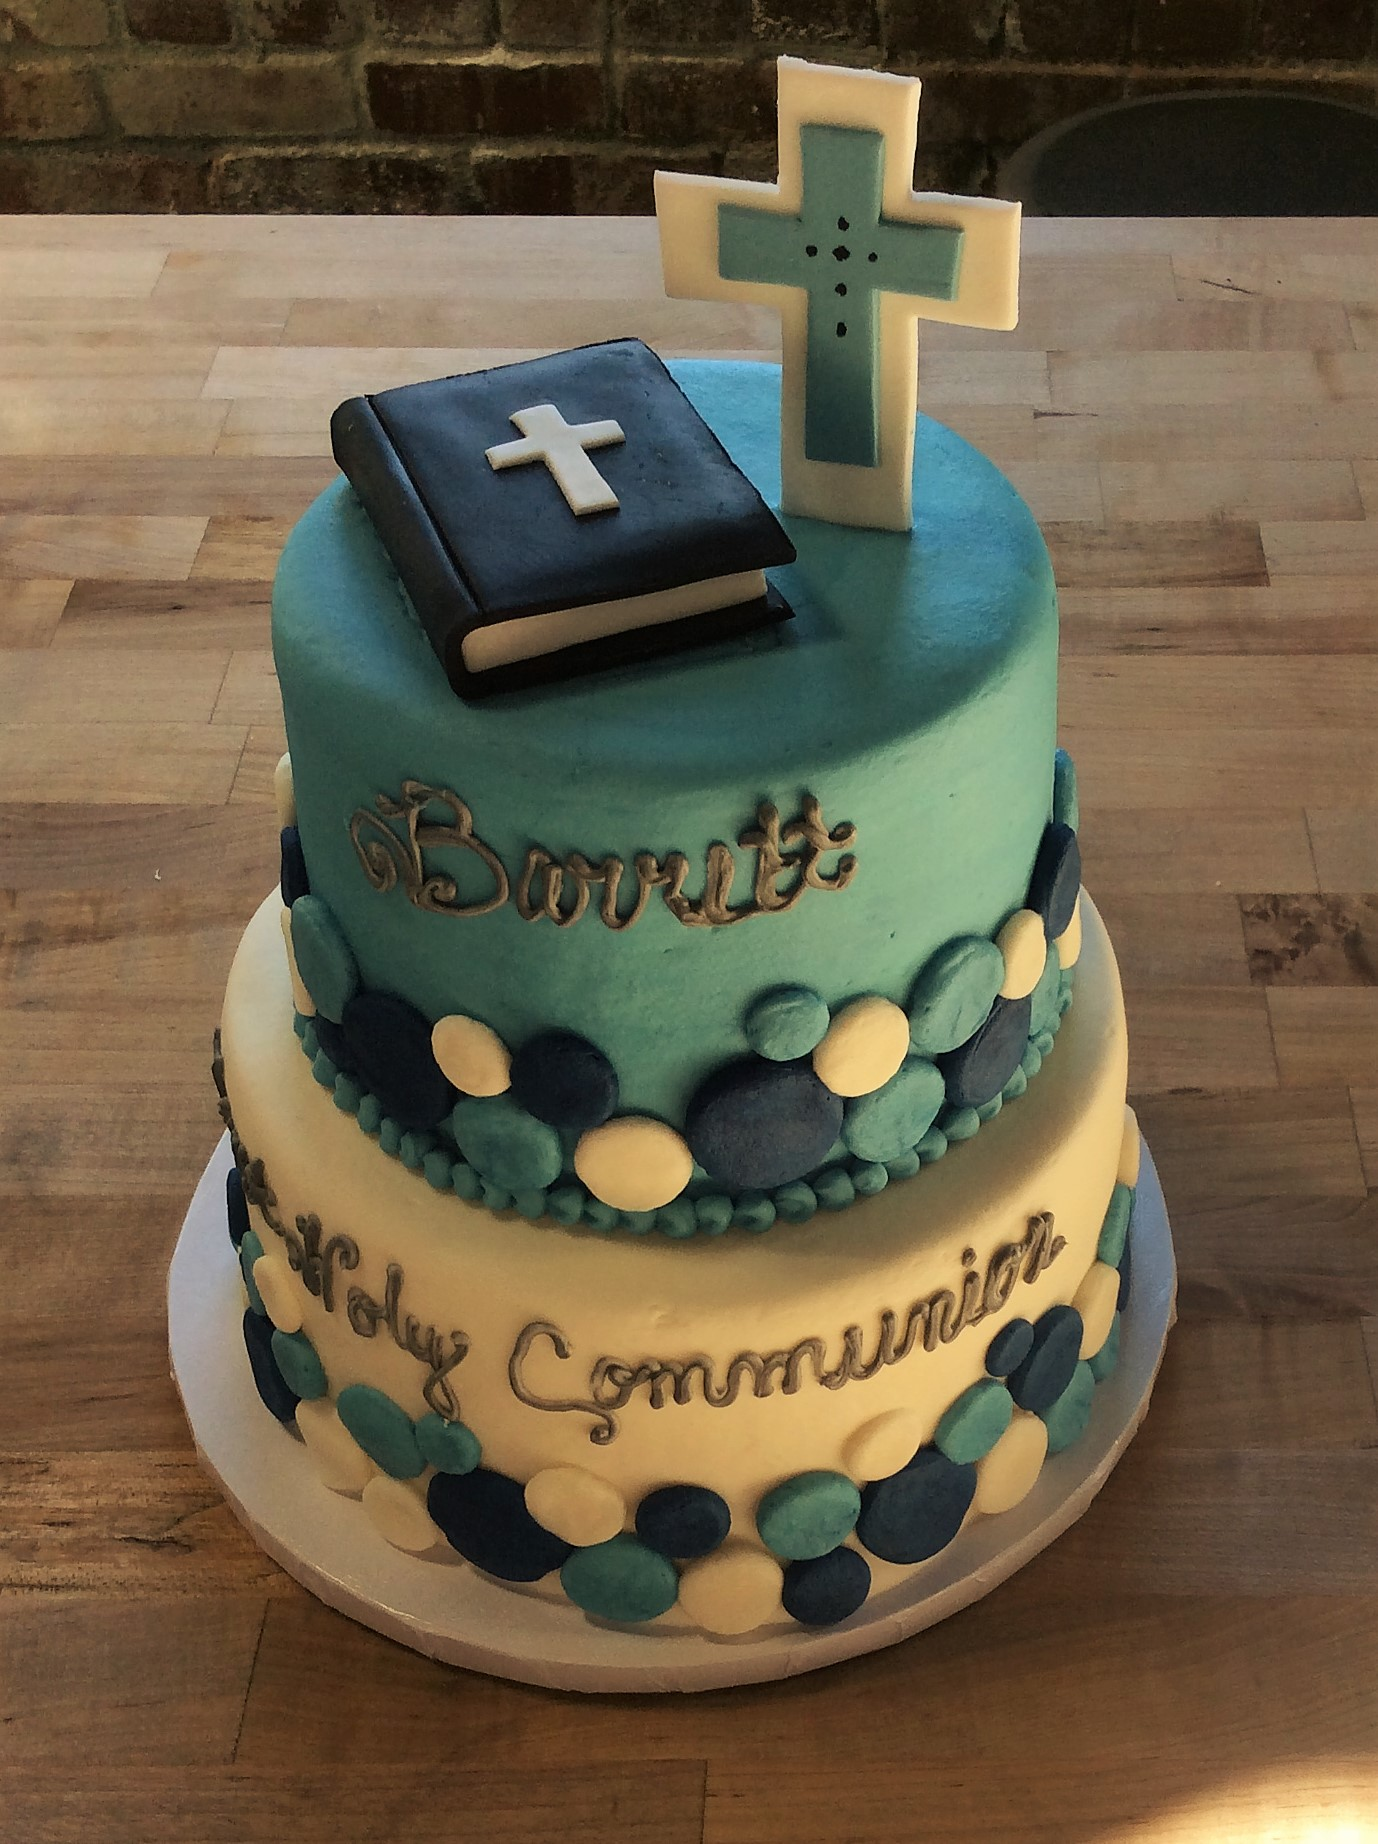 Scroll Work Religious Sheet Cake With Fondant Cross And